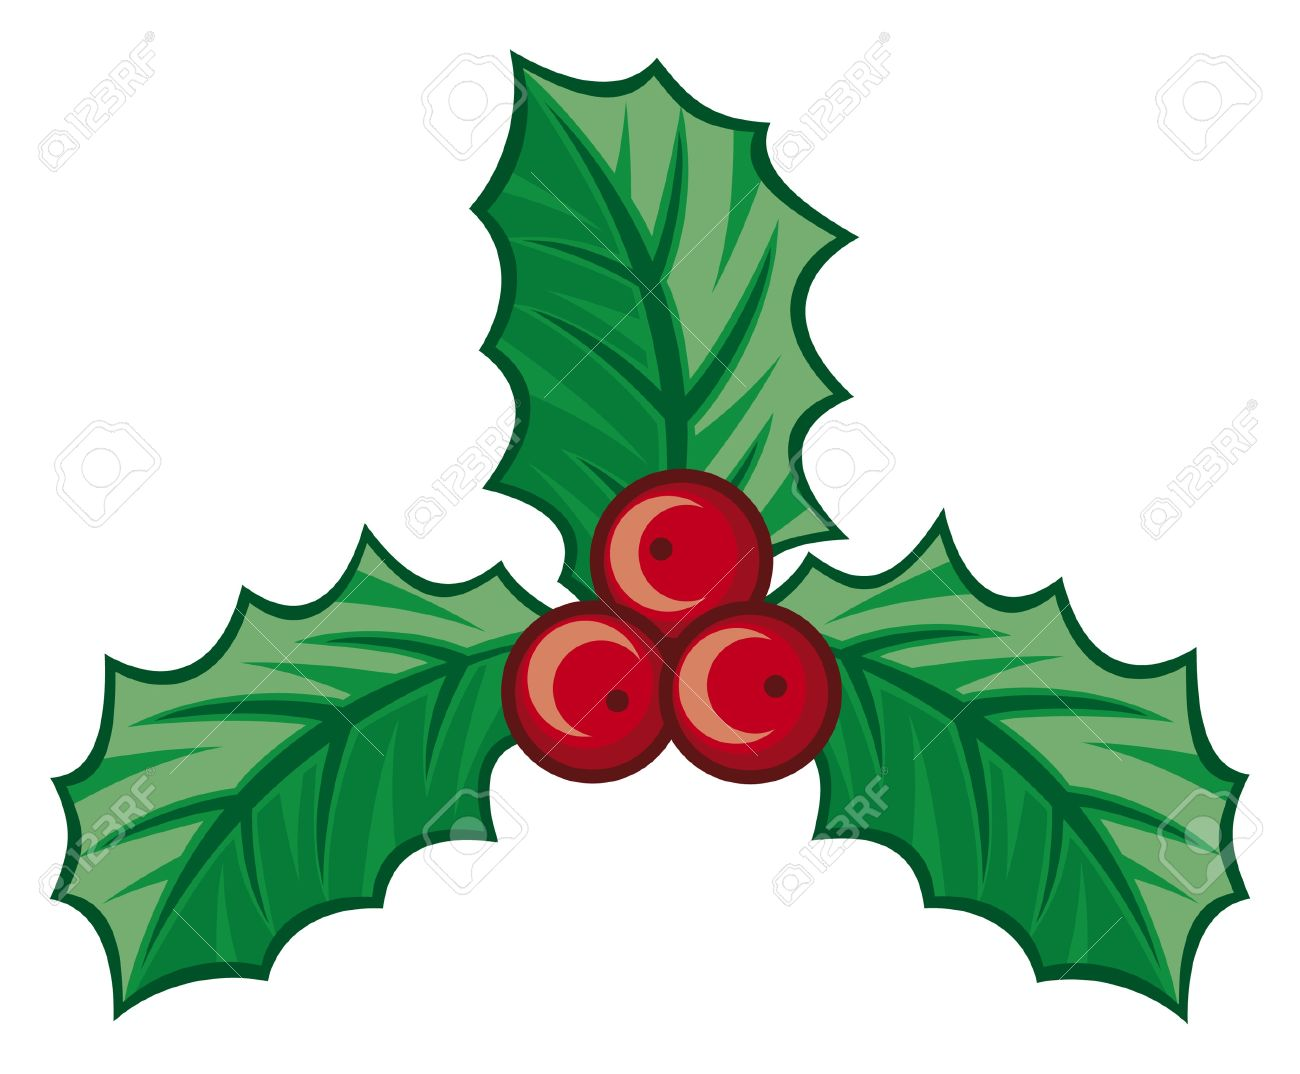 Why is holly a traditional christmas decoration - Christmas Holly Berry Symbol Christmas Decoration Isolated Holly With Berries Holly Berry Icon